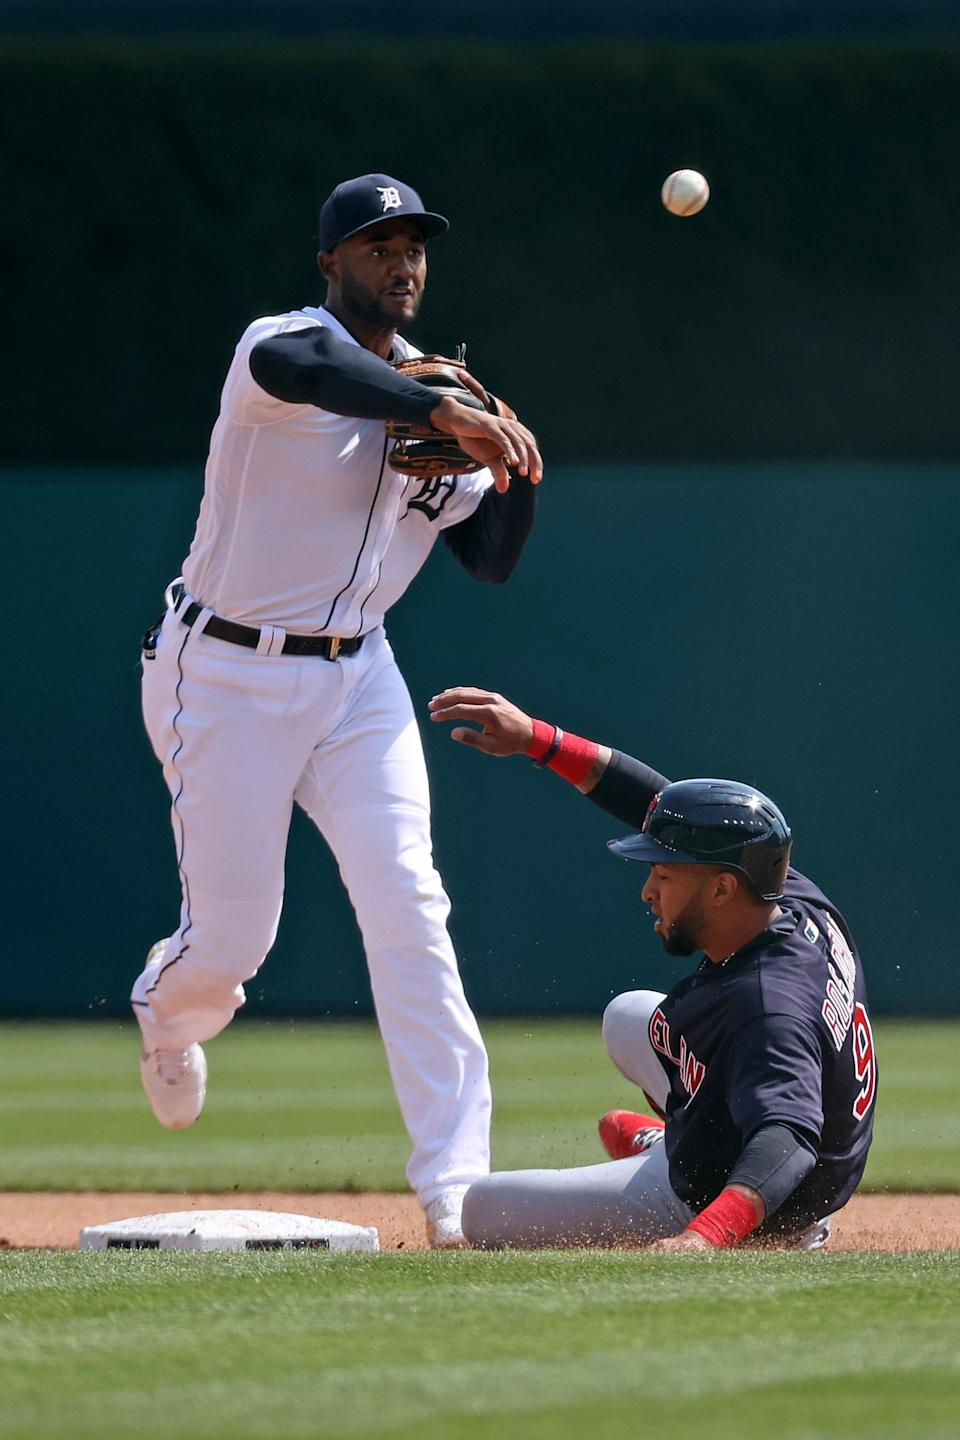 Detroit Tigers' Niko Goodrum turns a fourth-inning double play over the slide of Cleveland Indians' Eddie Rosario at Comerica Park on April 3, 2021.